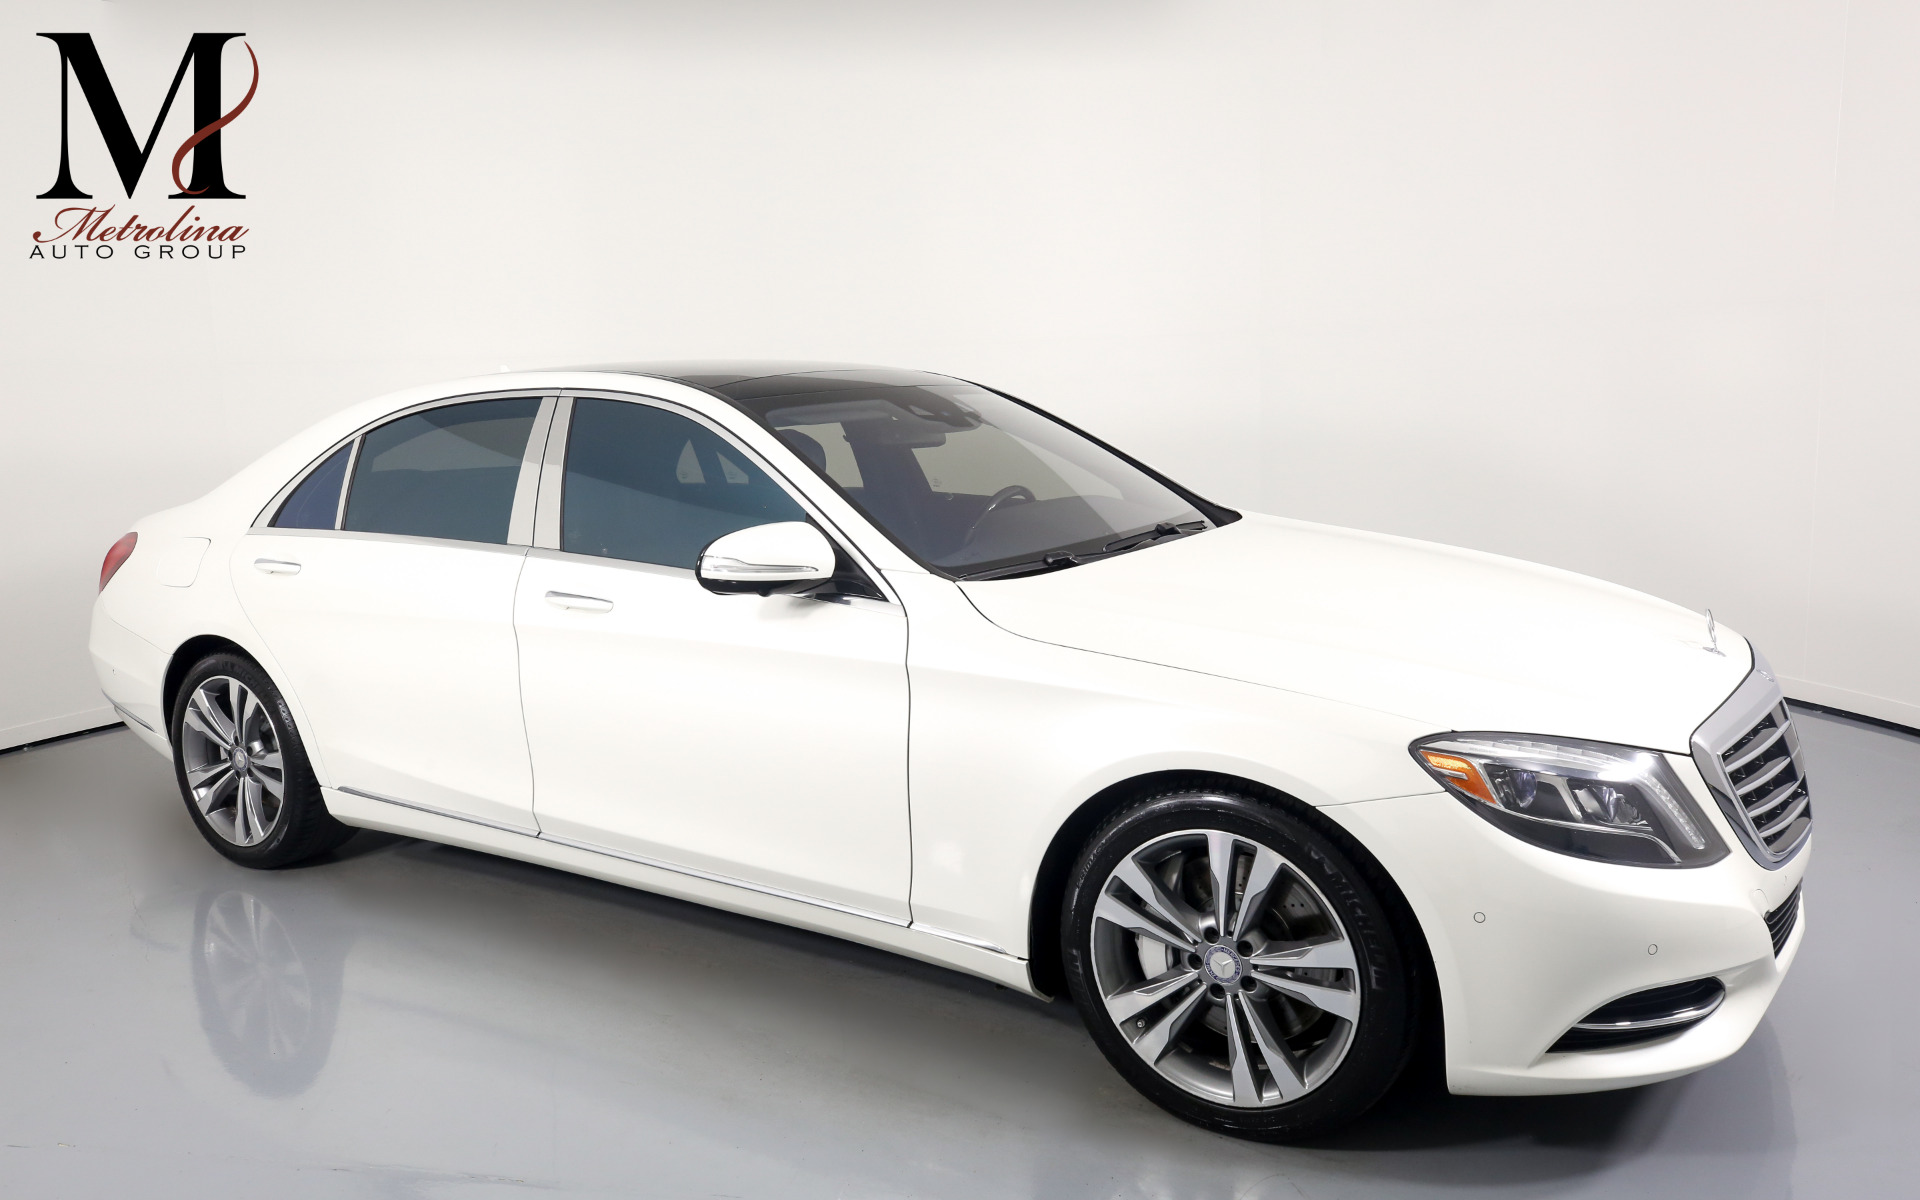 Used 2015 Mercedes-Benz S-Class S 550 4MATIC for sale $49,996 at Metrolina Auto Group in Charlotte NC 28217 - 1